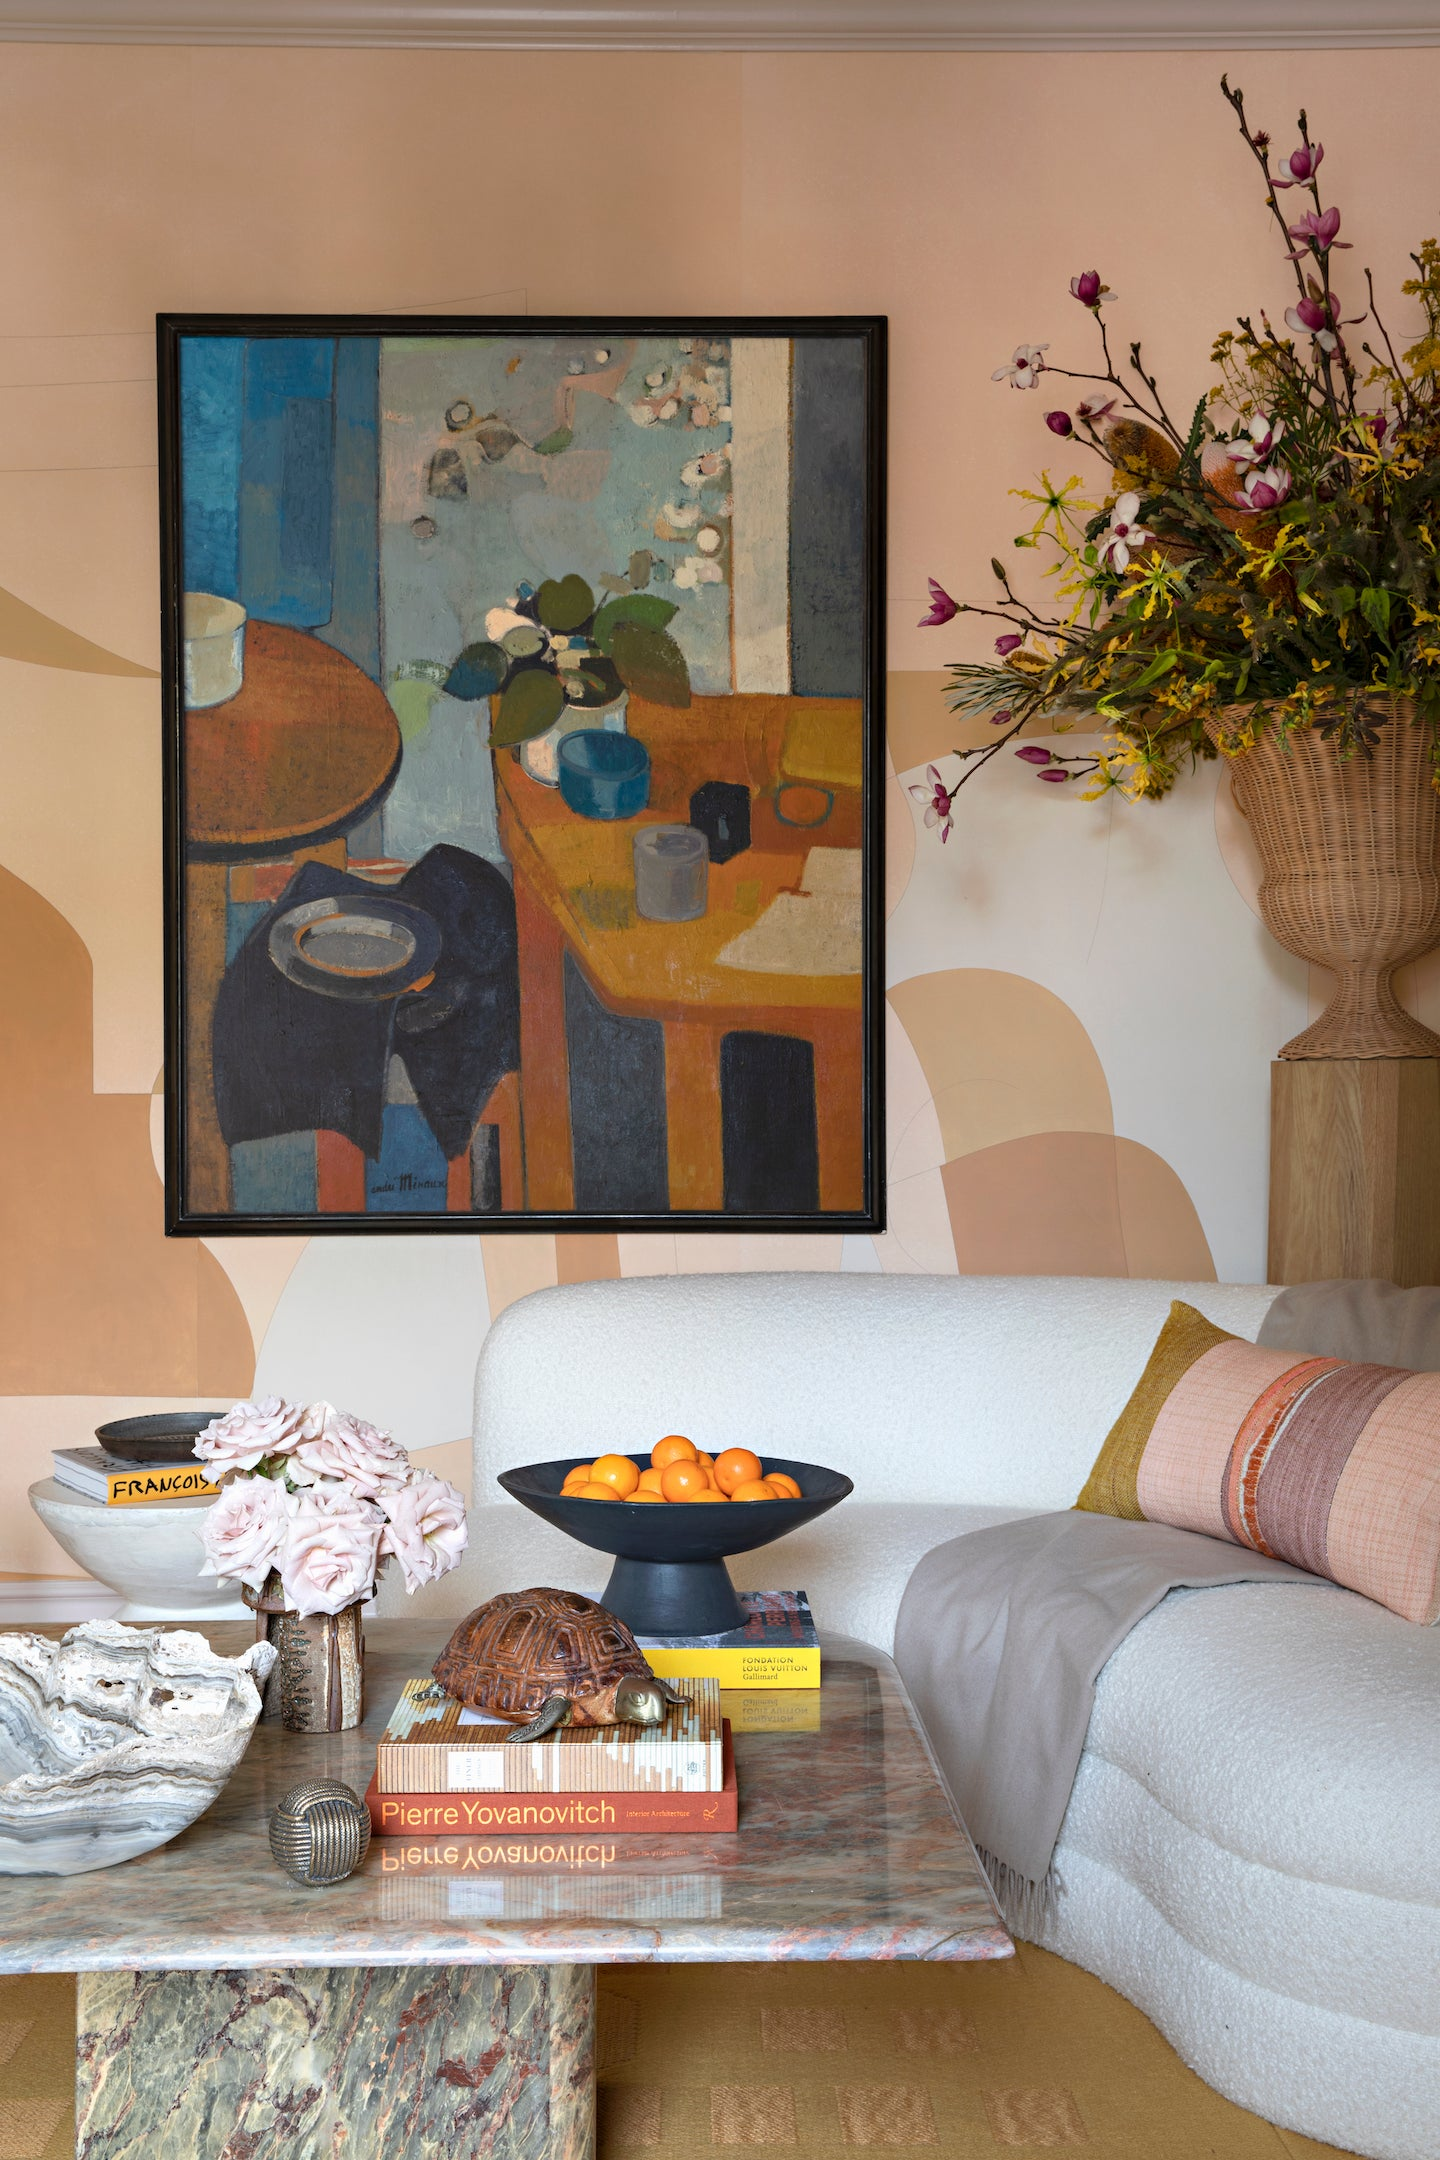 curved whie sofa and large abstract painting on wall